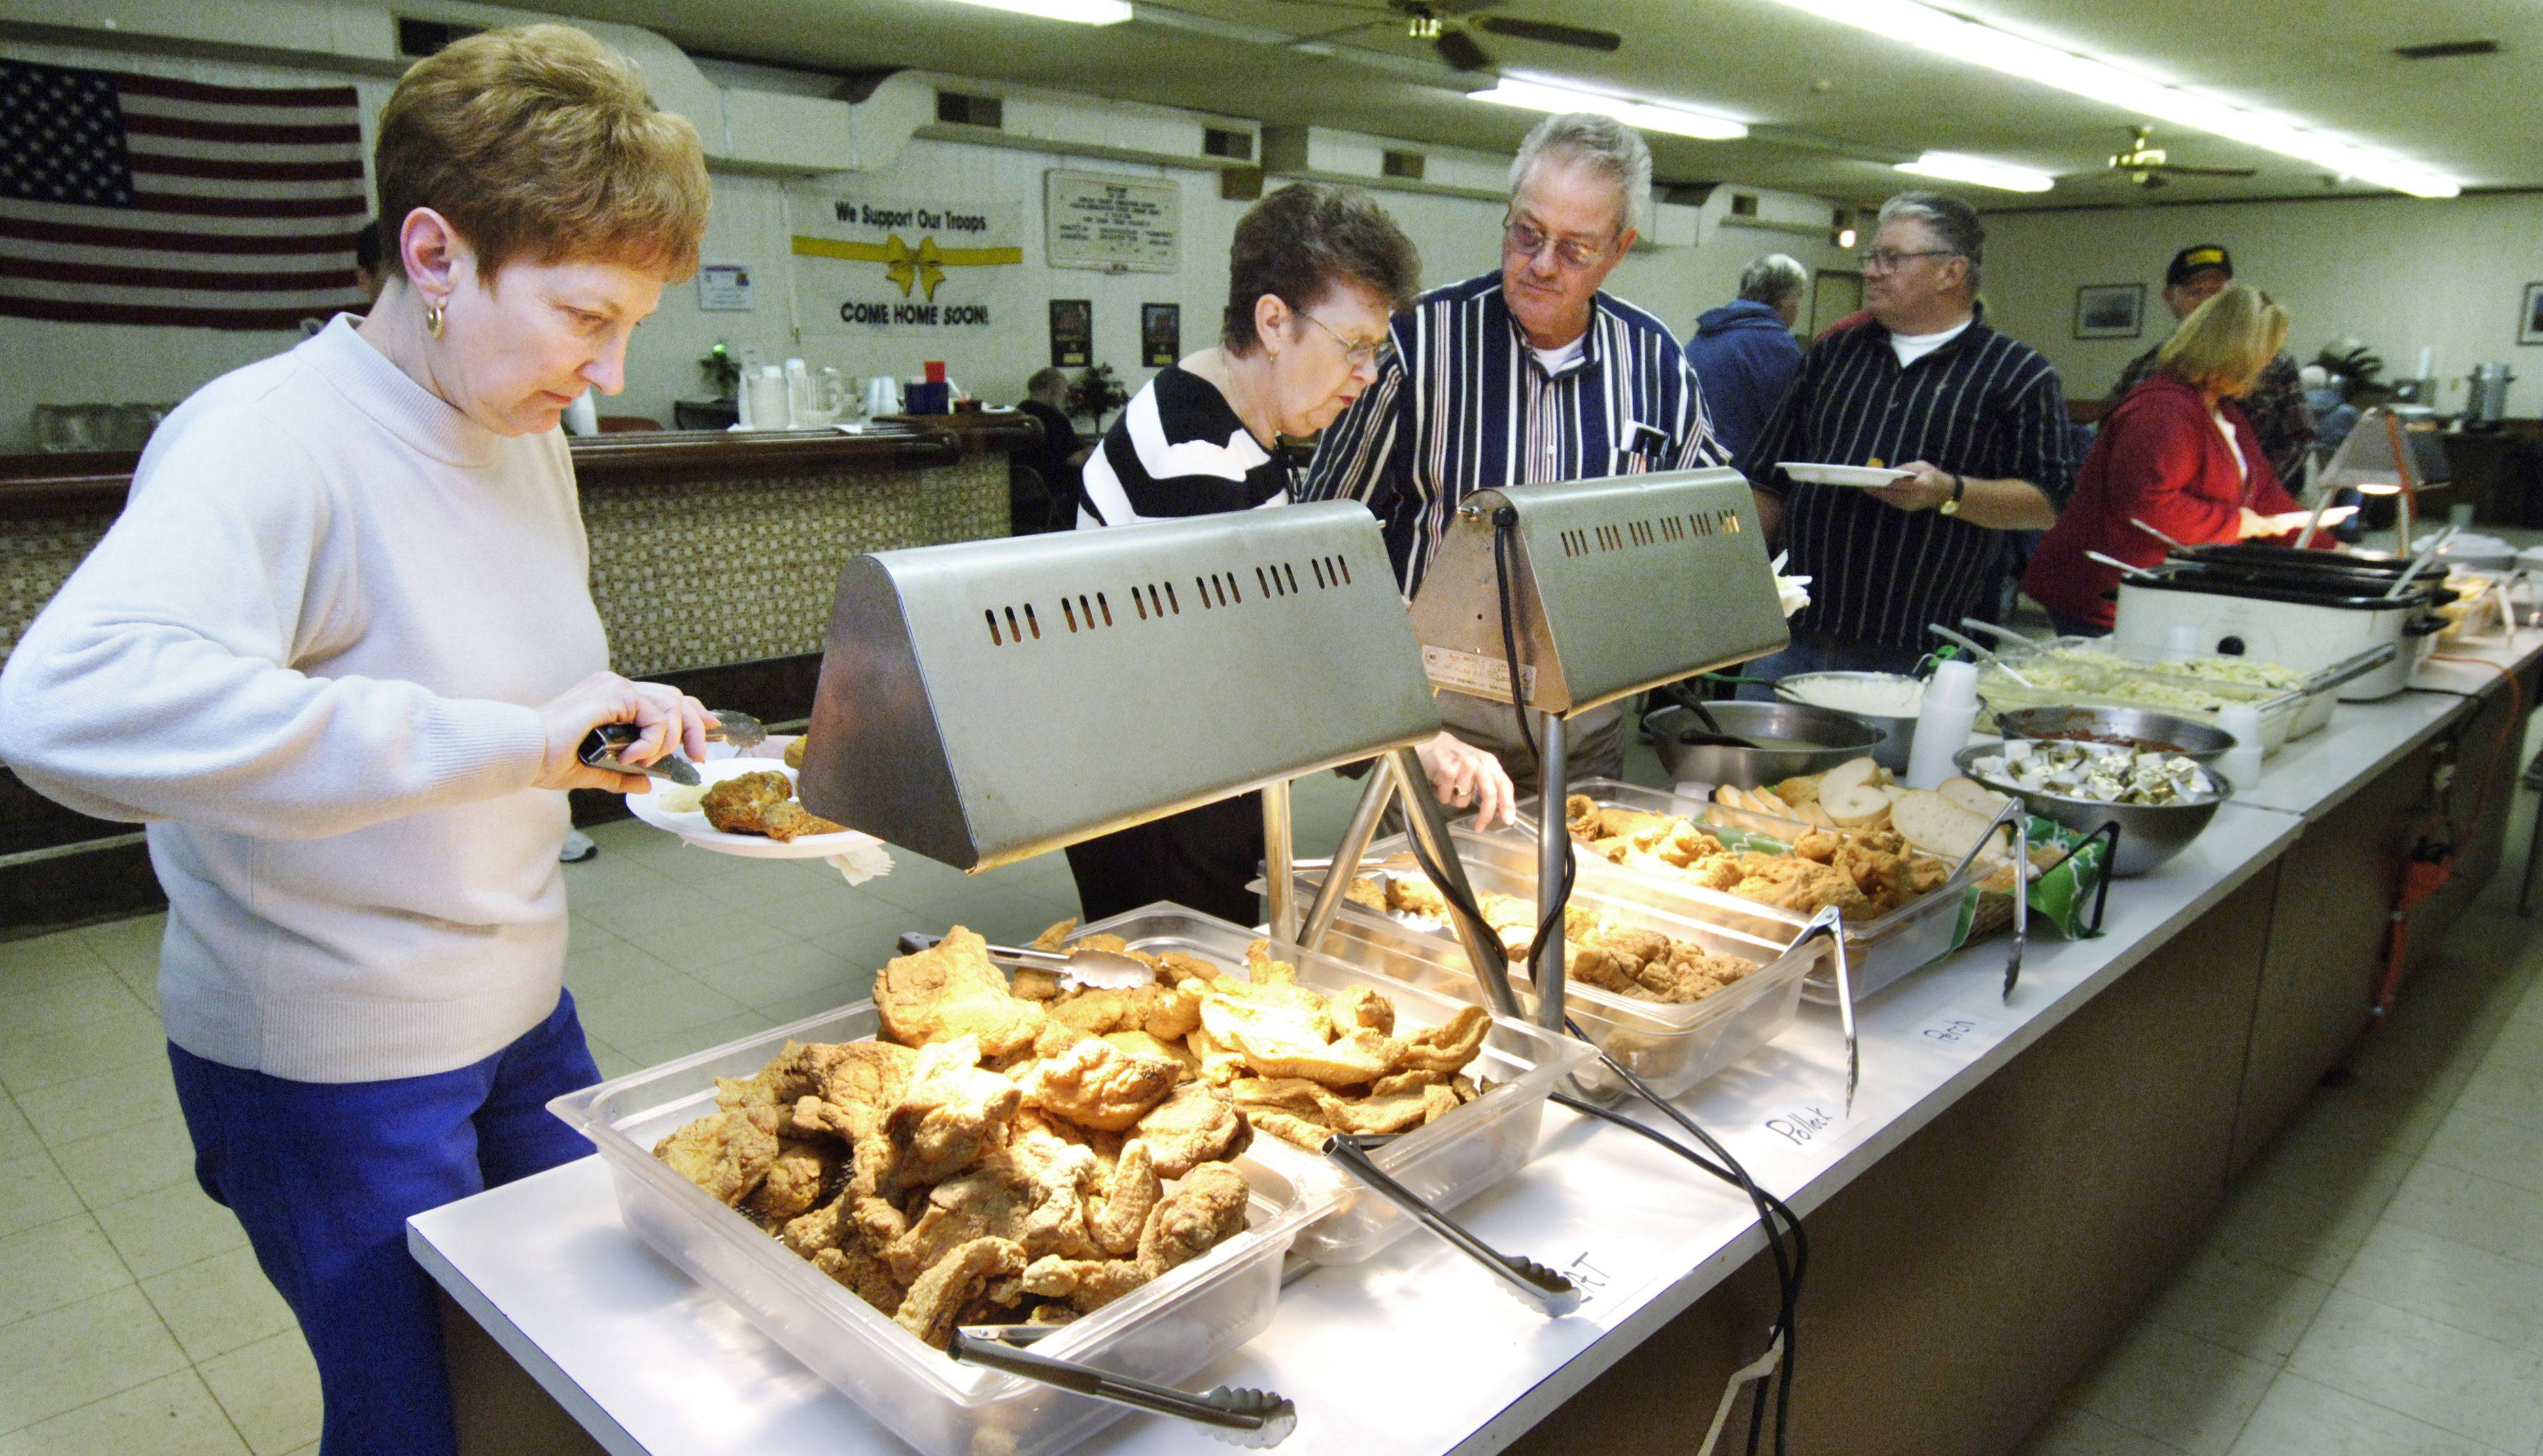 Three types of fish, chicken and sides are options for diners at the Sugar Grove American Legion Post 1271.